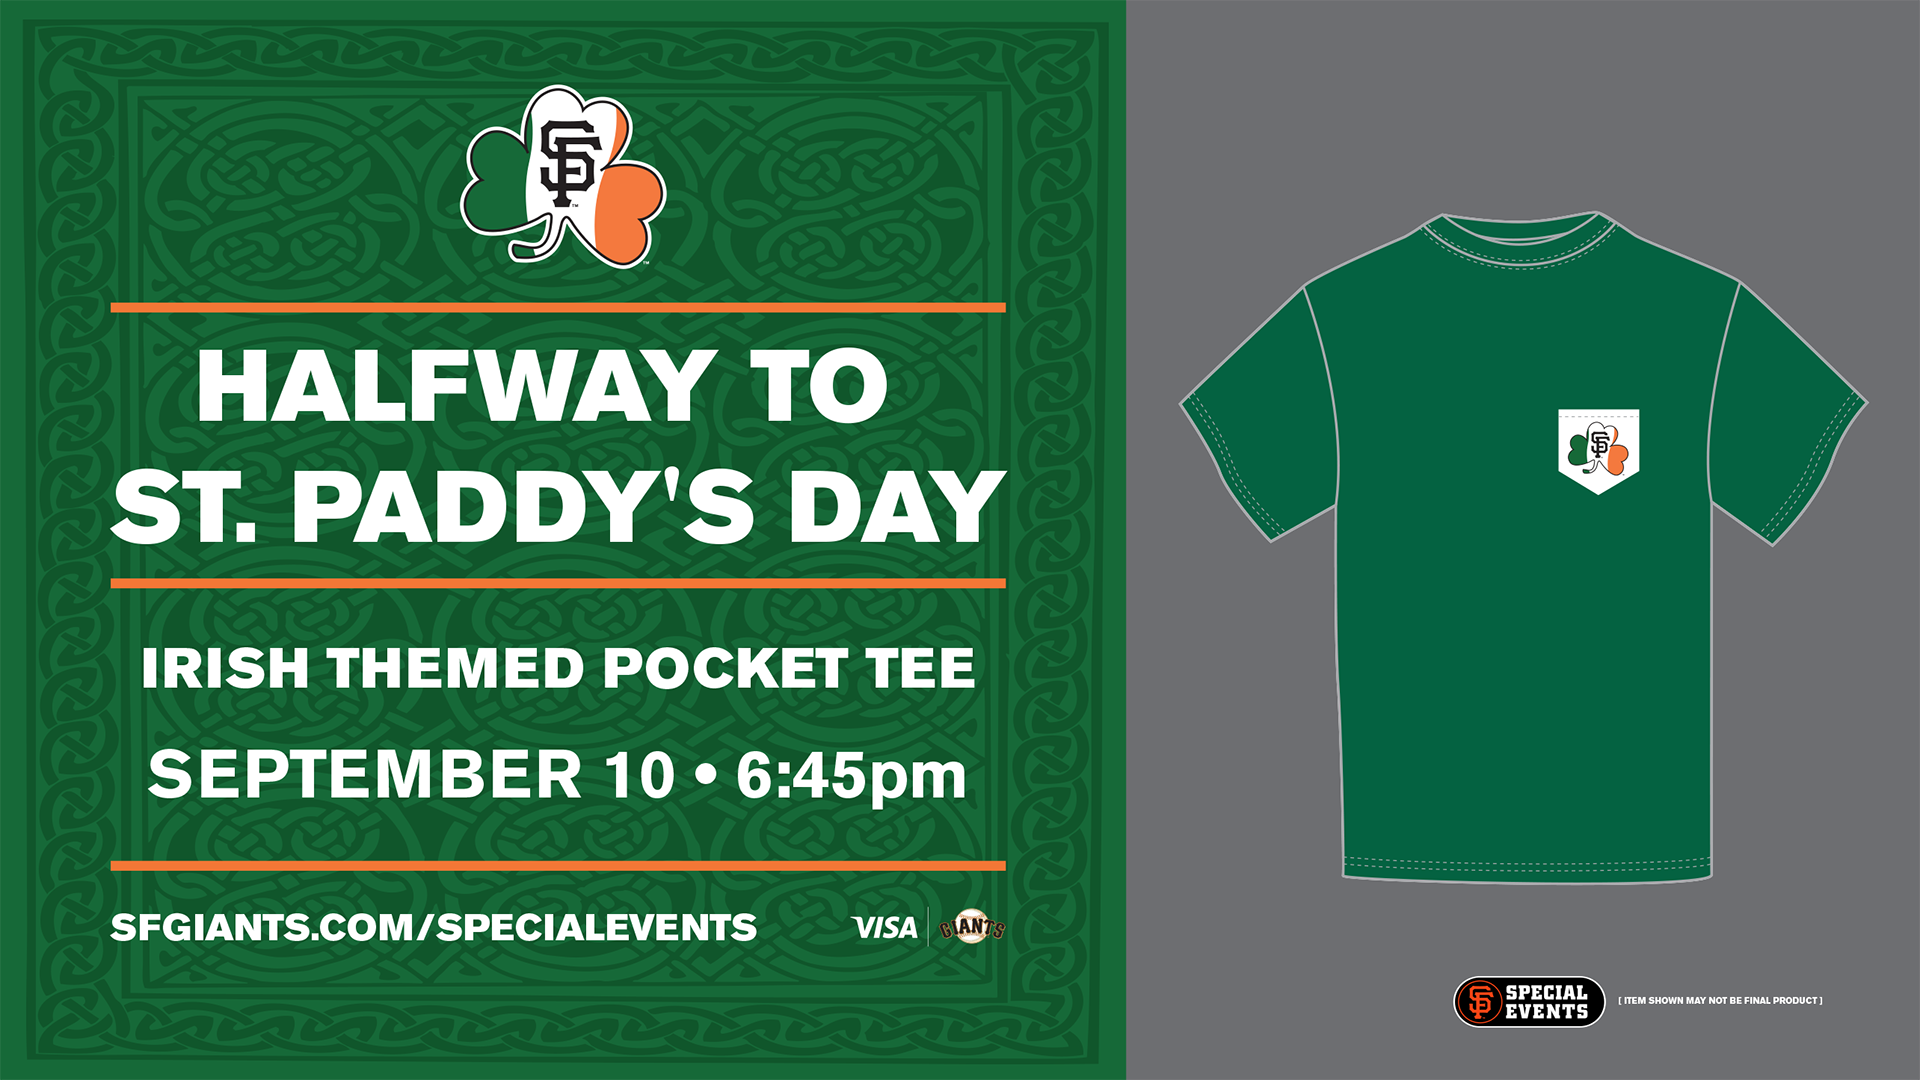 SPECIAL EVENT  Halfway to St. Paddy s Day  df9b3e4e837